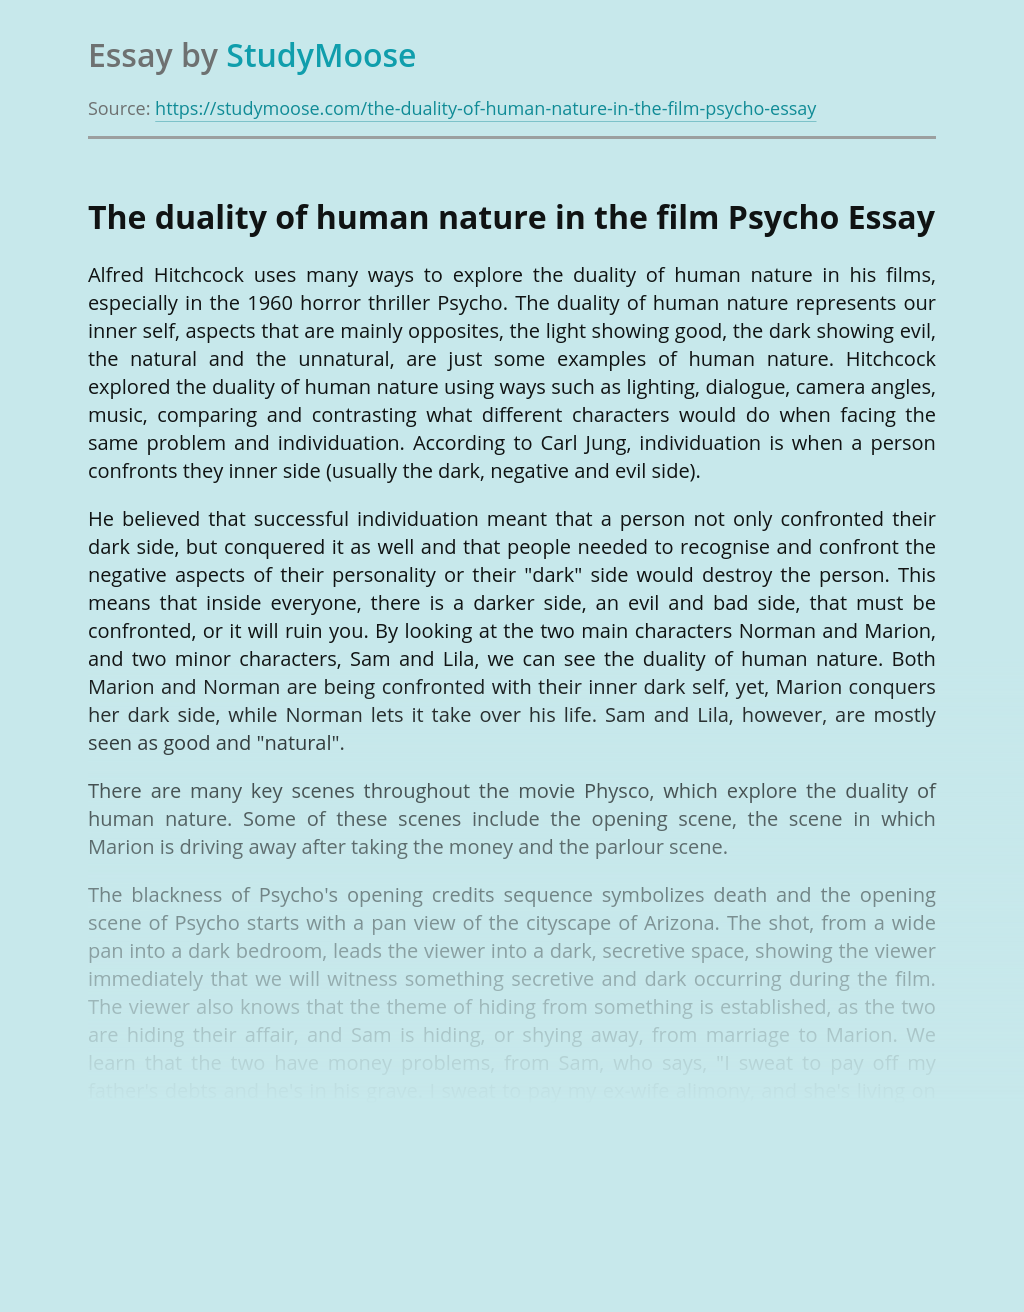 The duality of human nature in the film Psycho